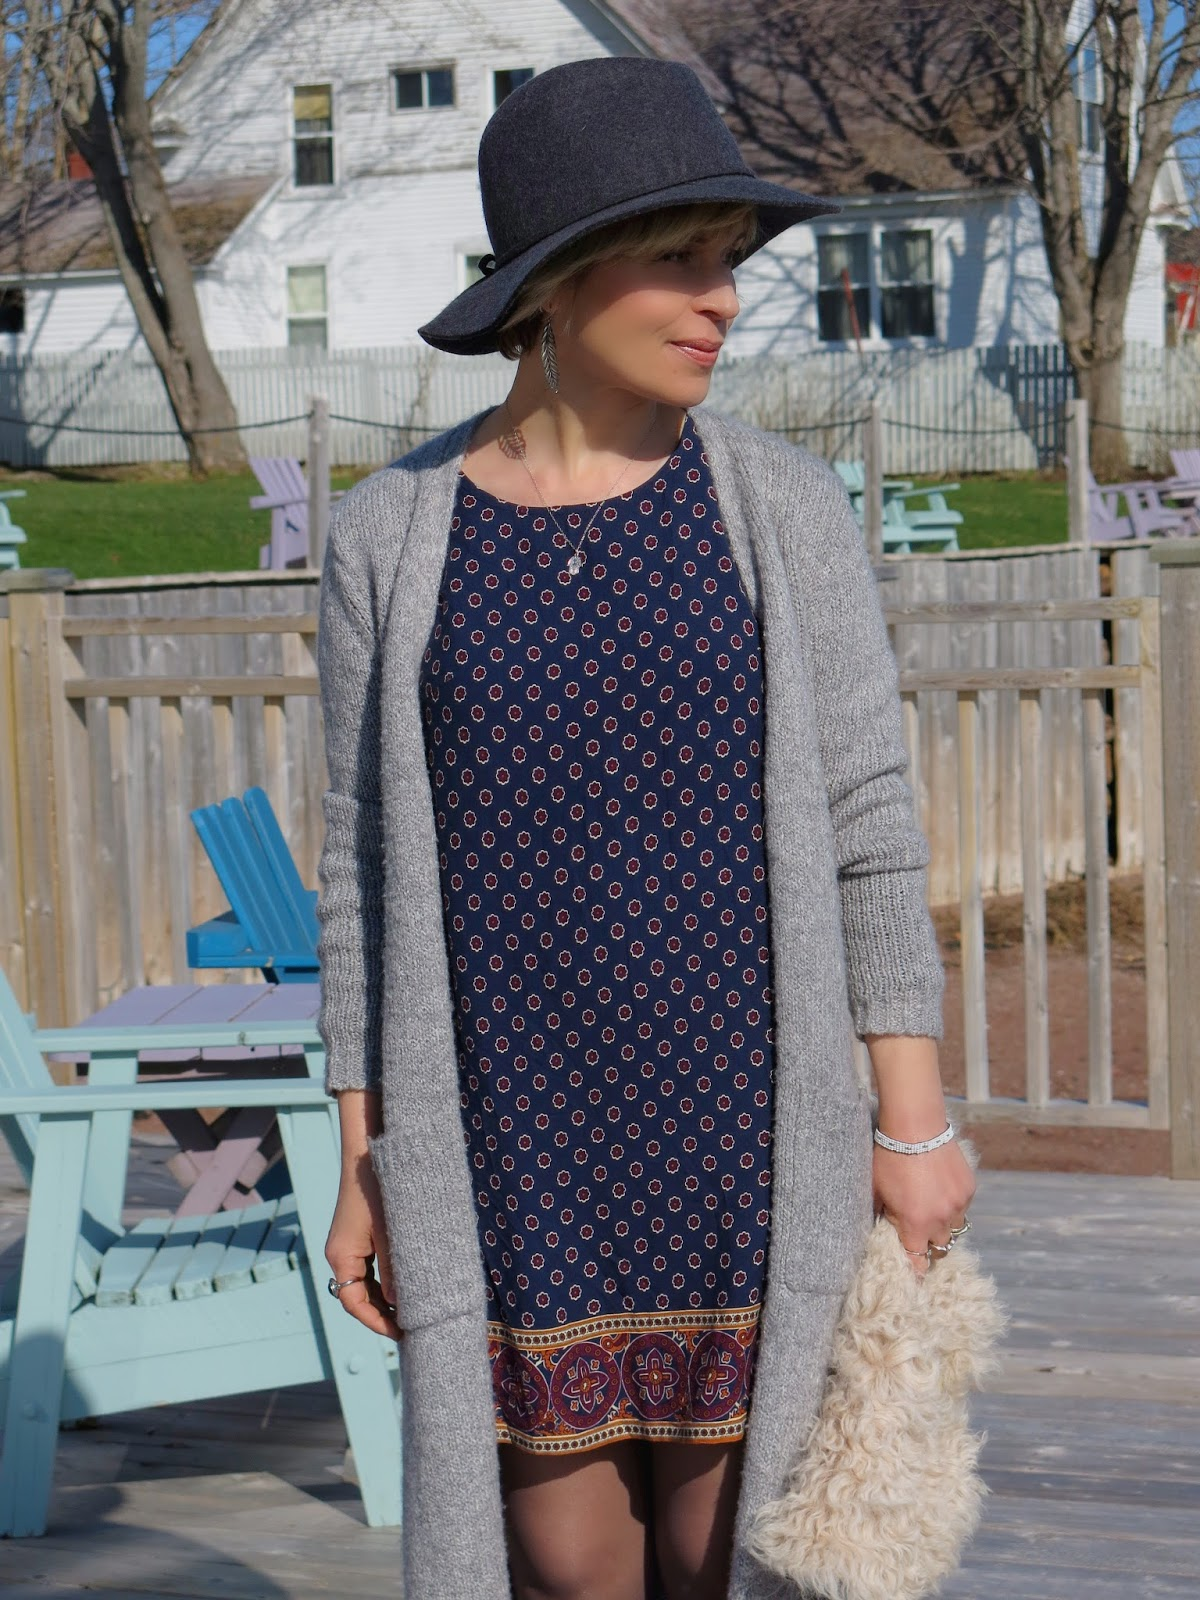 printed dress, long cardigan, and floppy hat